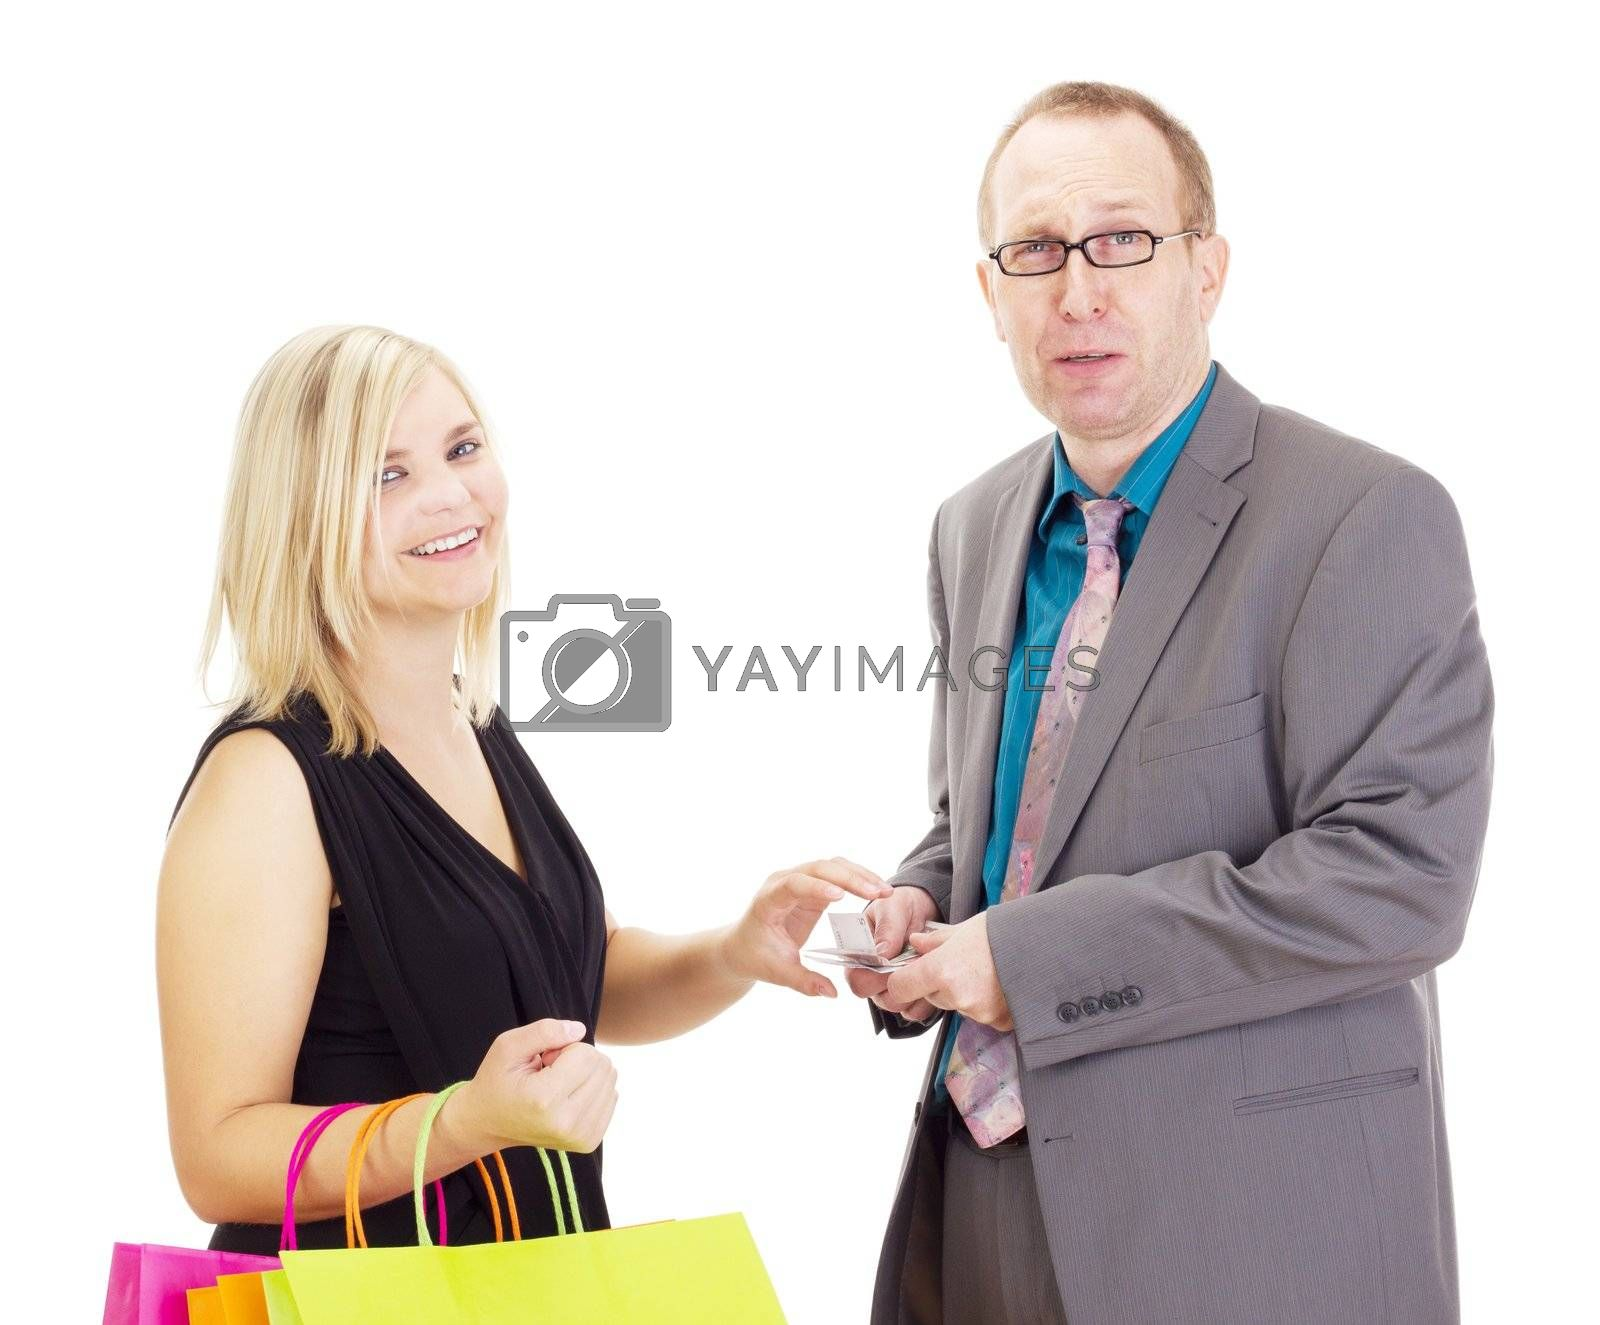 Two business people on a shopping tour by gwolters